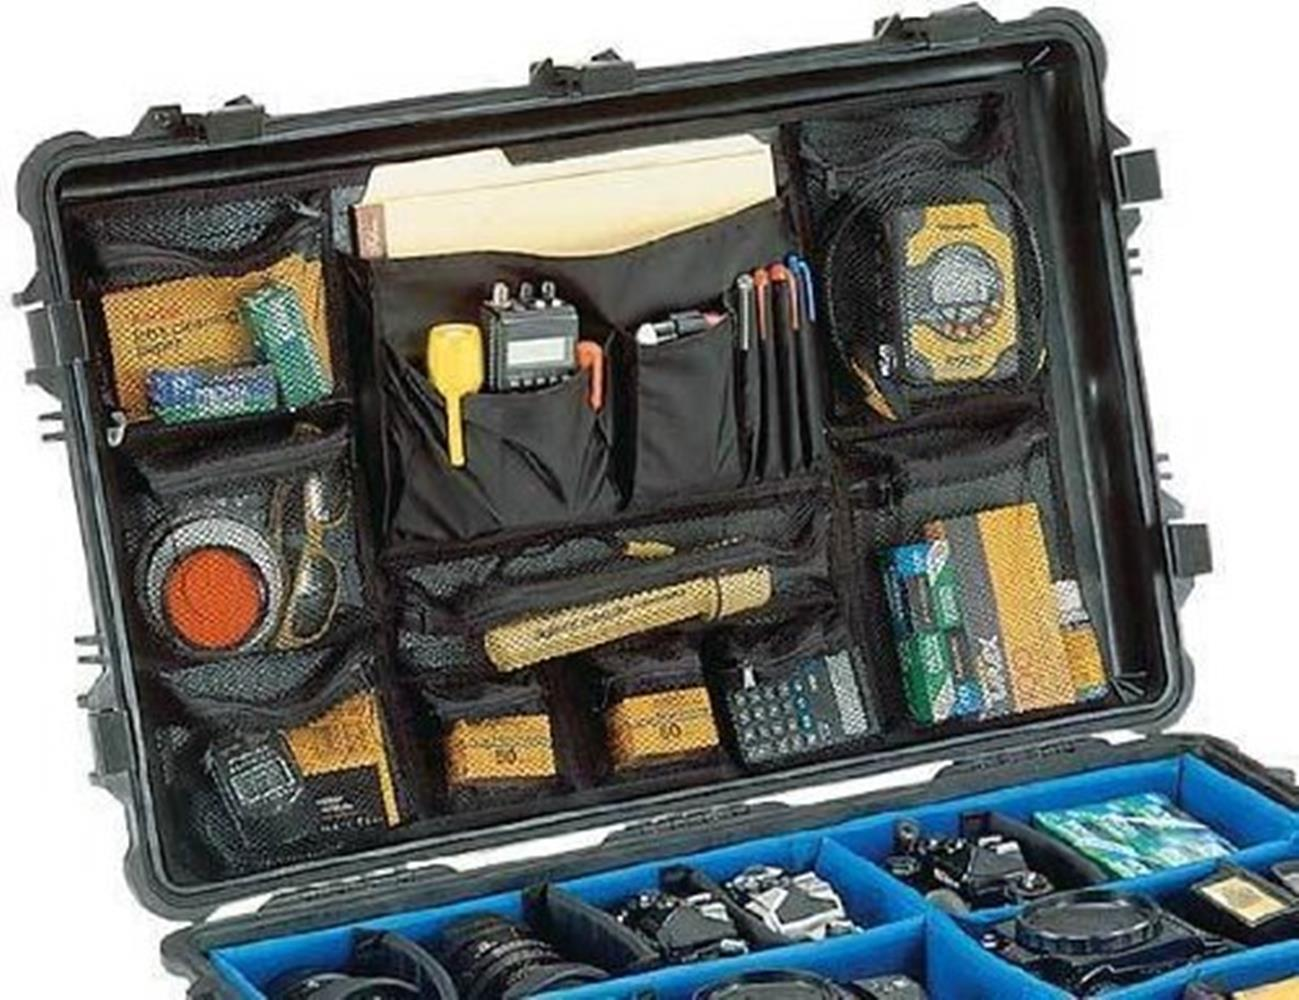 PELICAN LID ORGANIZER FOR 1650 CASE